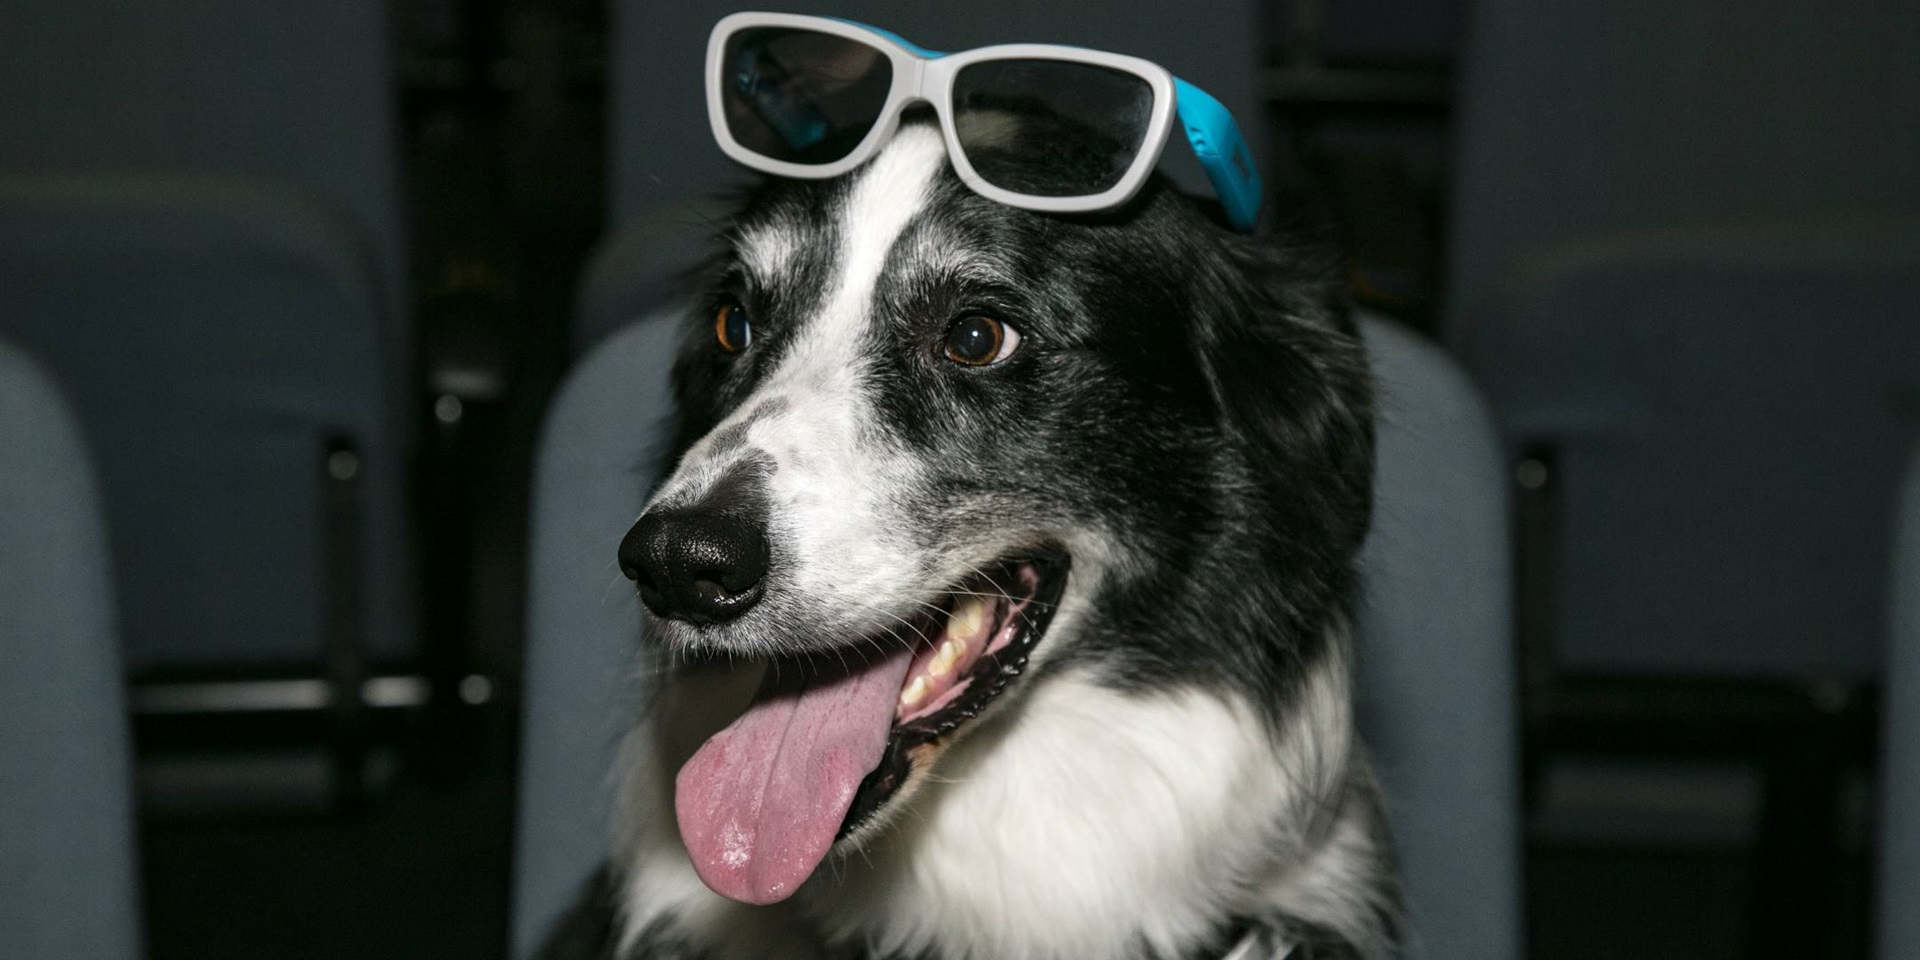 Museum dog Bailey pictured wearing 3D glasses on his head in the theatre.